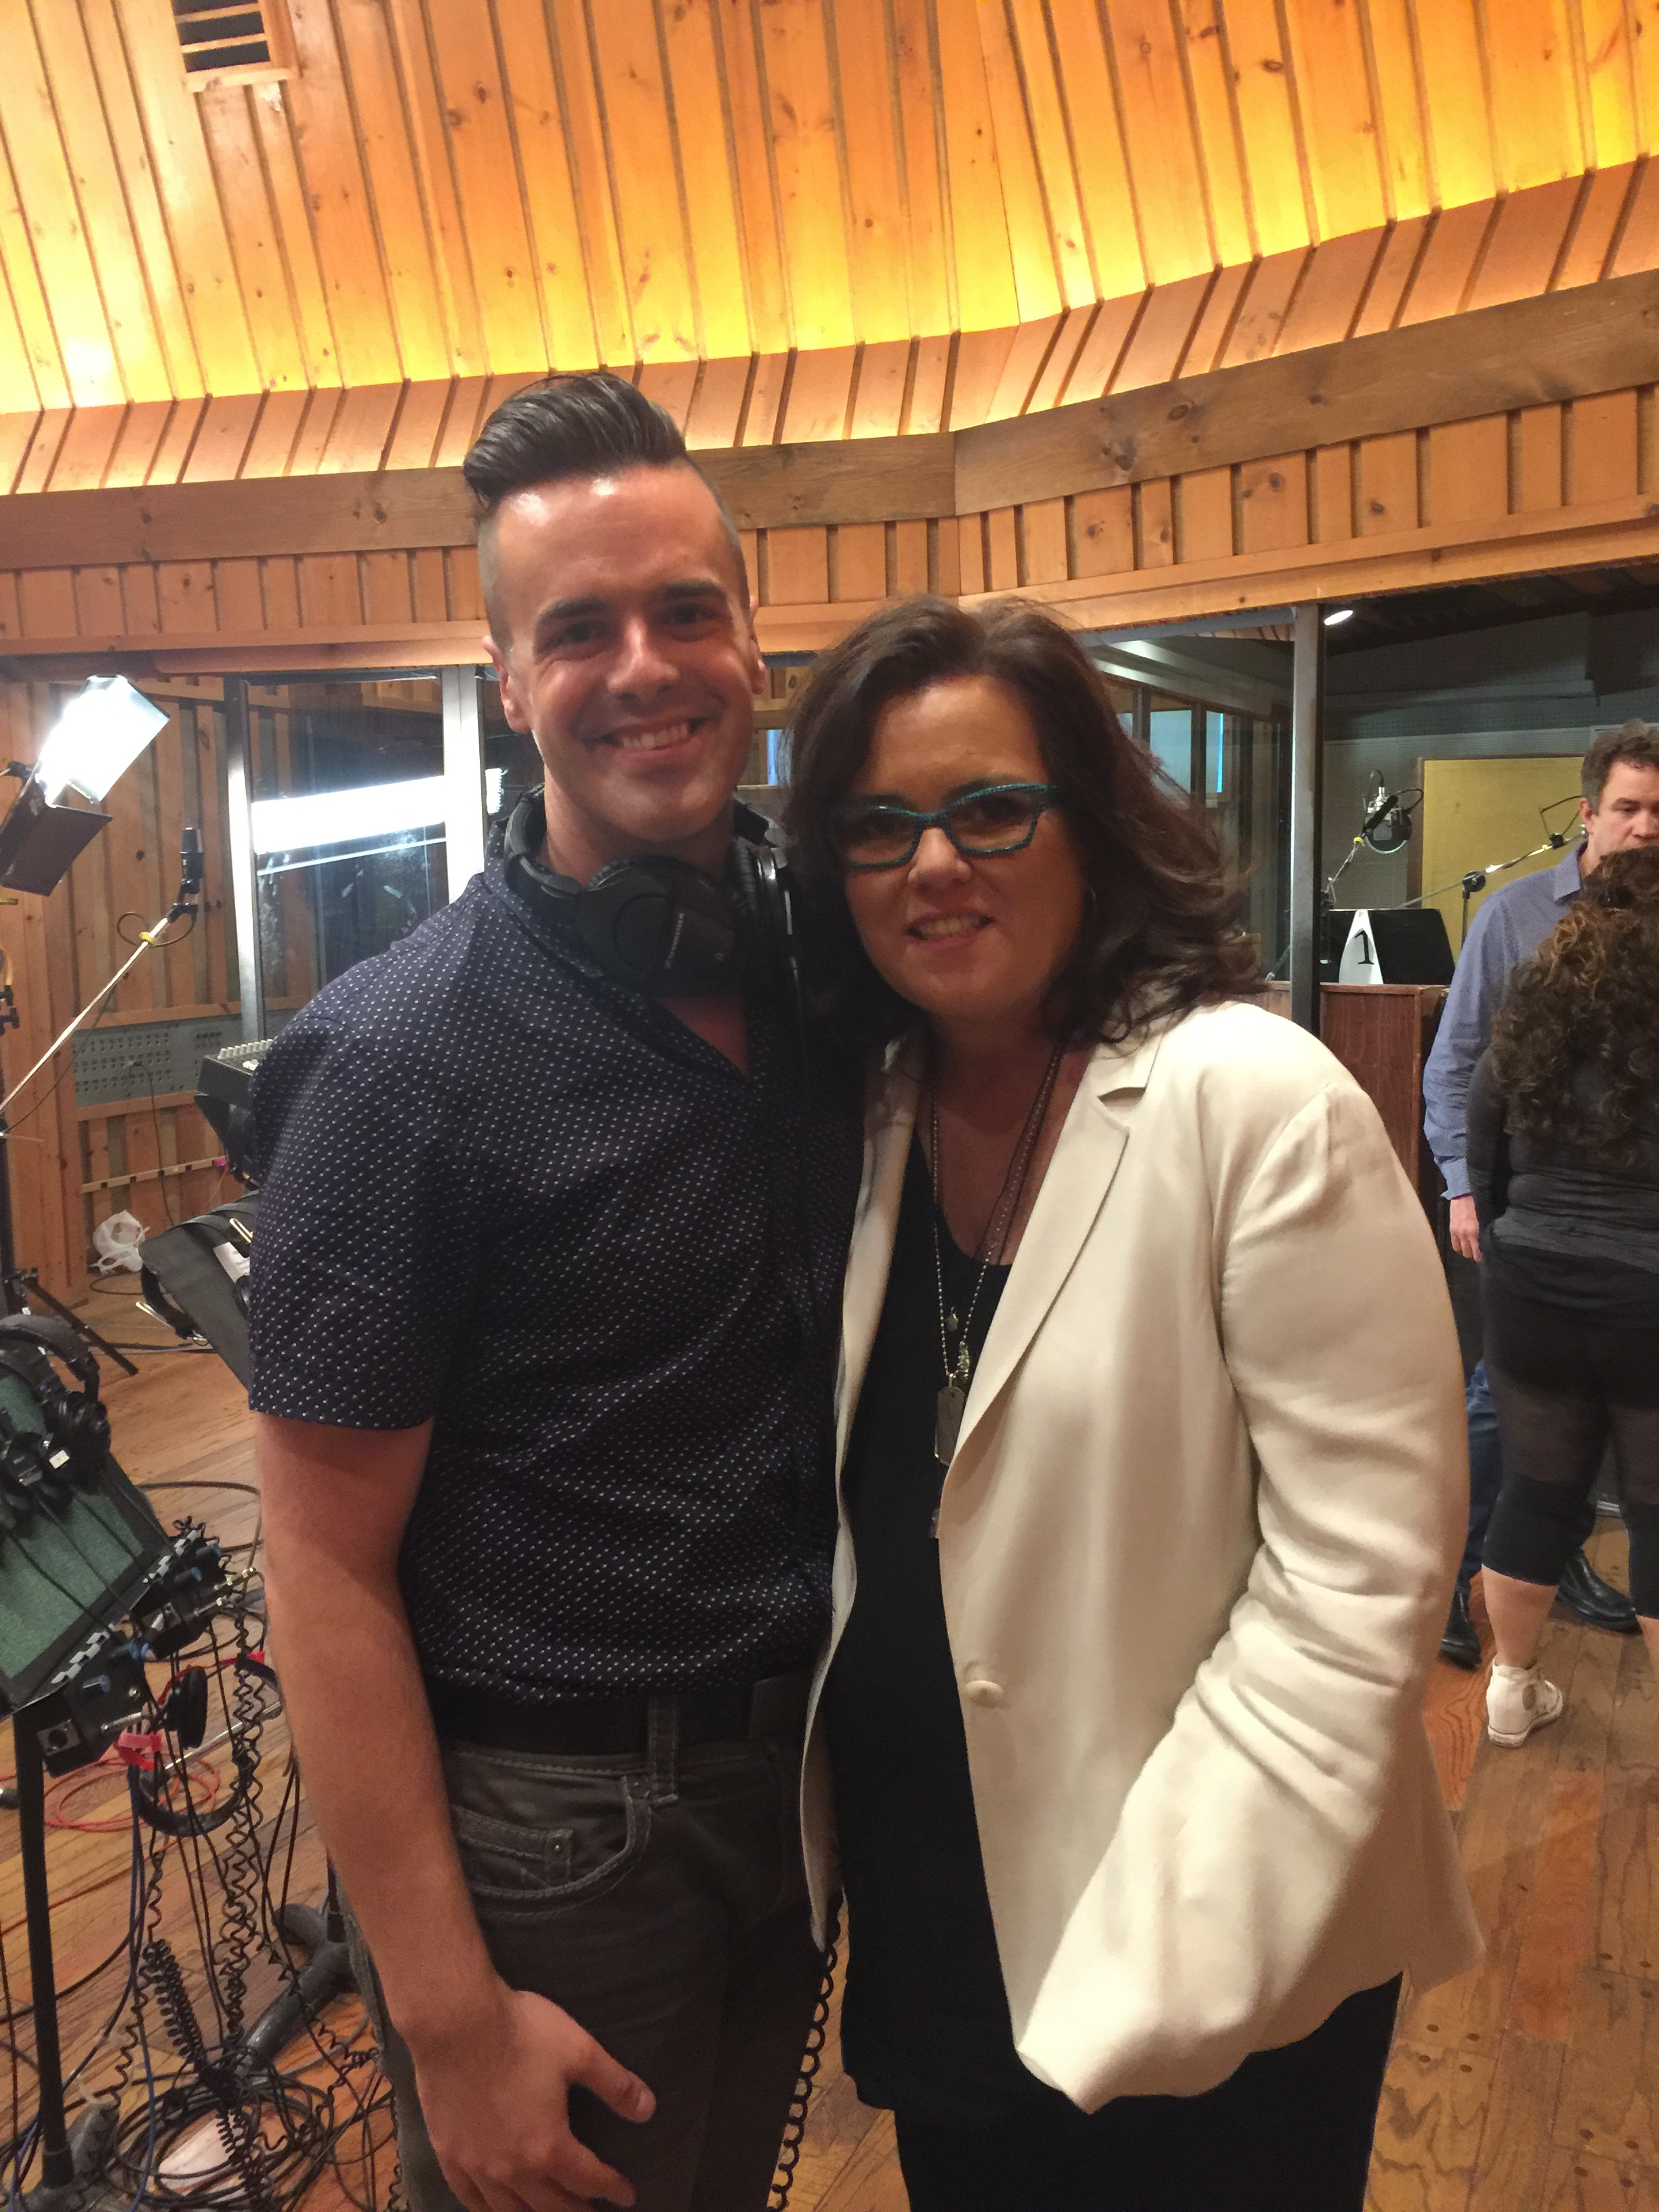 Michael J Moritz Jr and Rosie O'Donnell